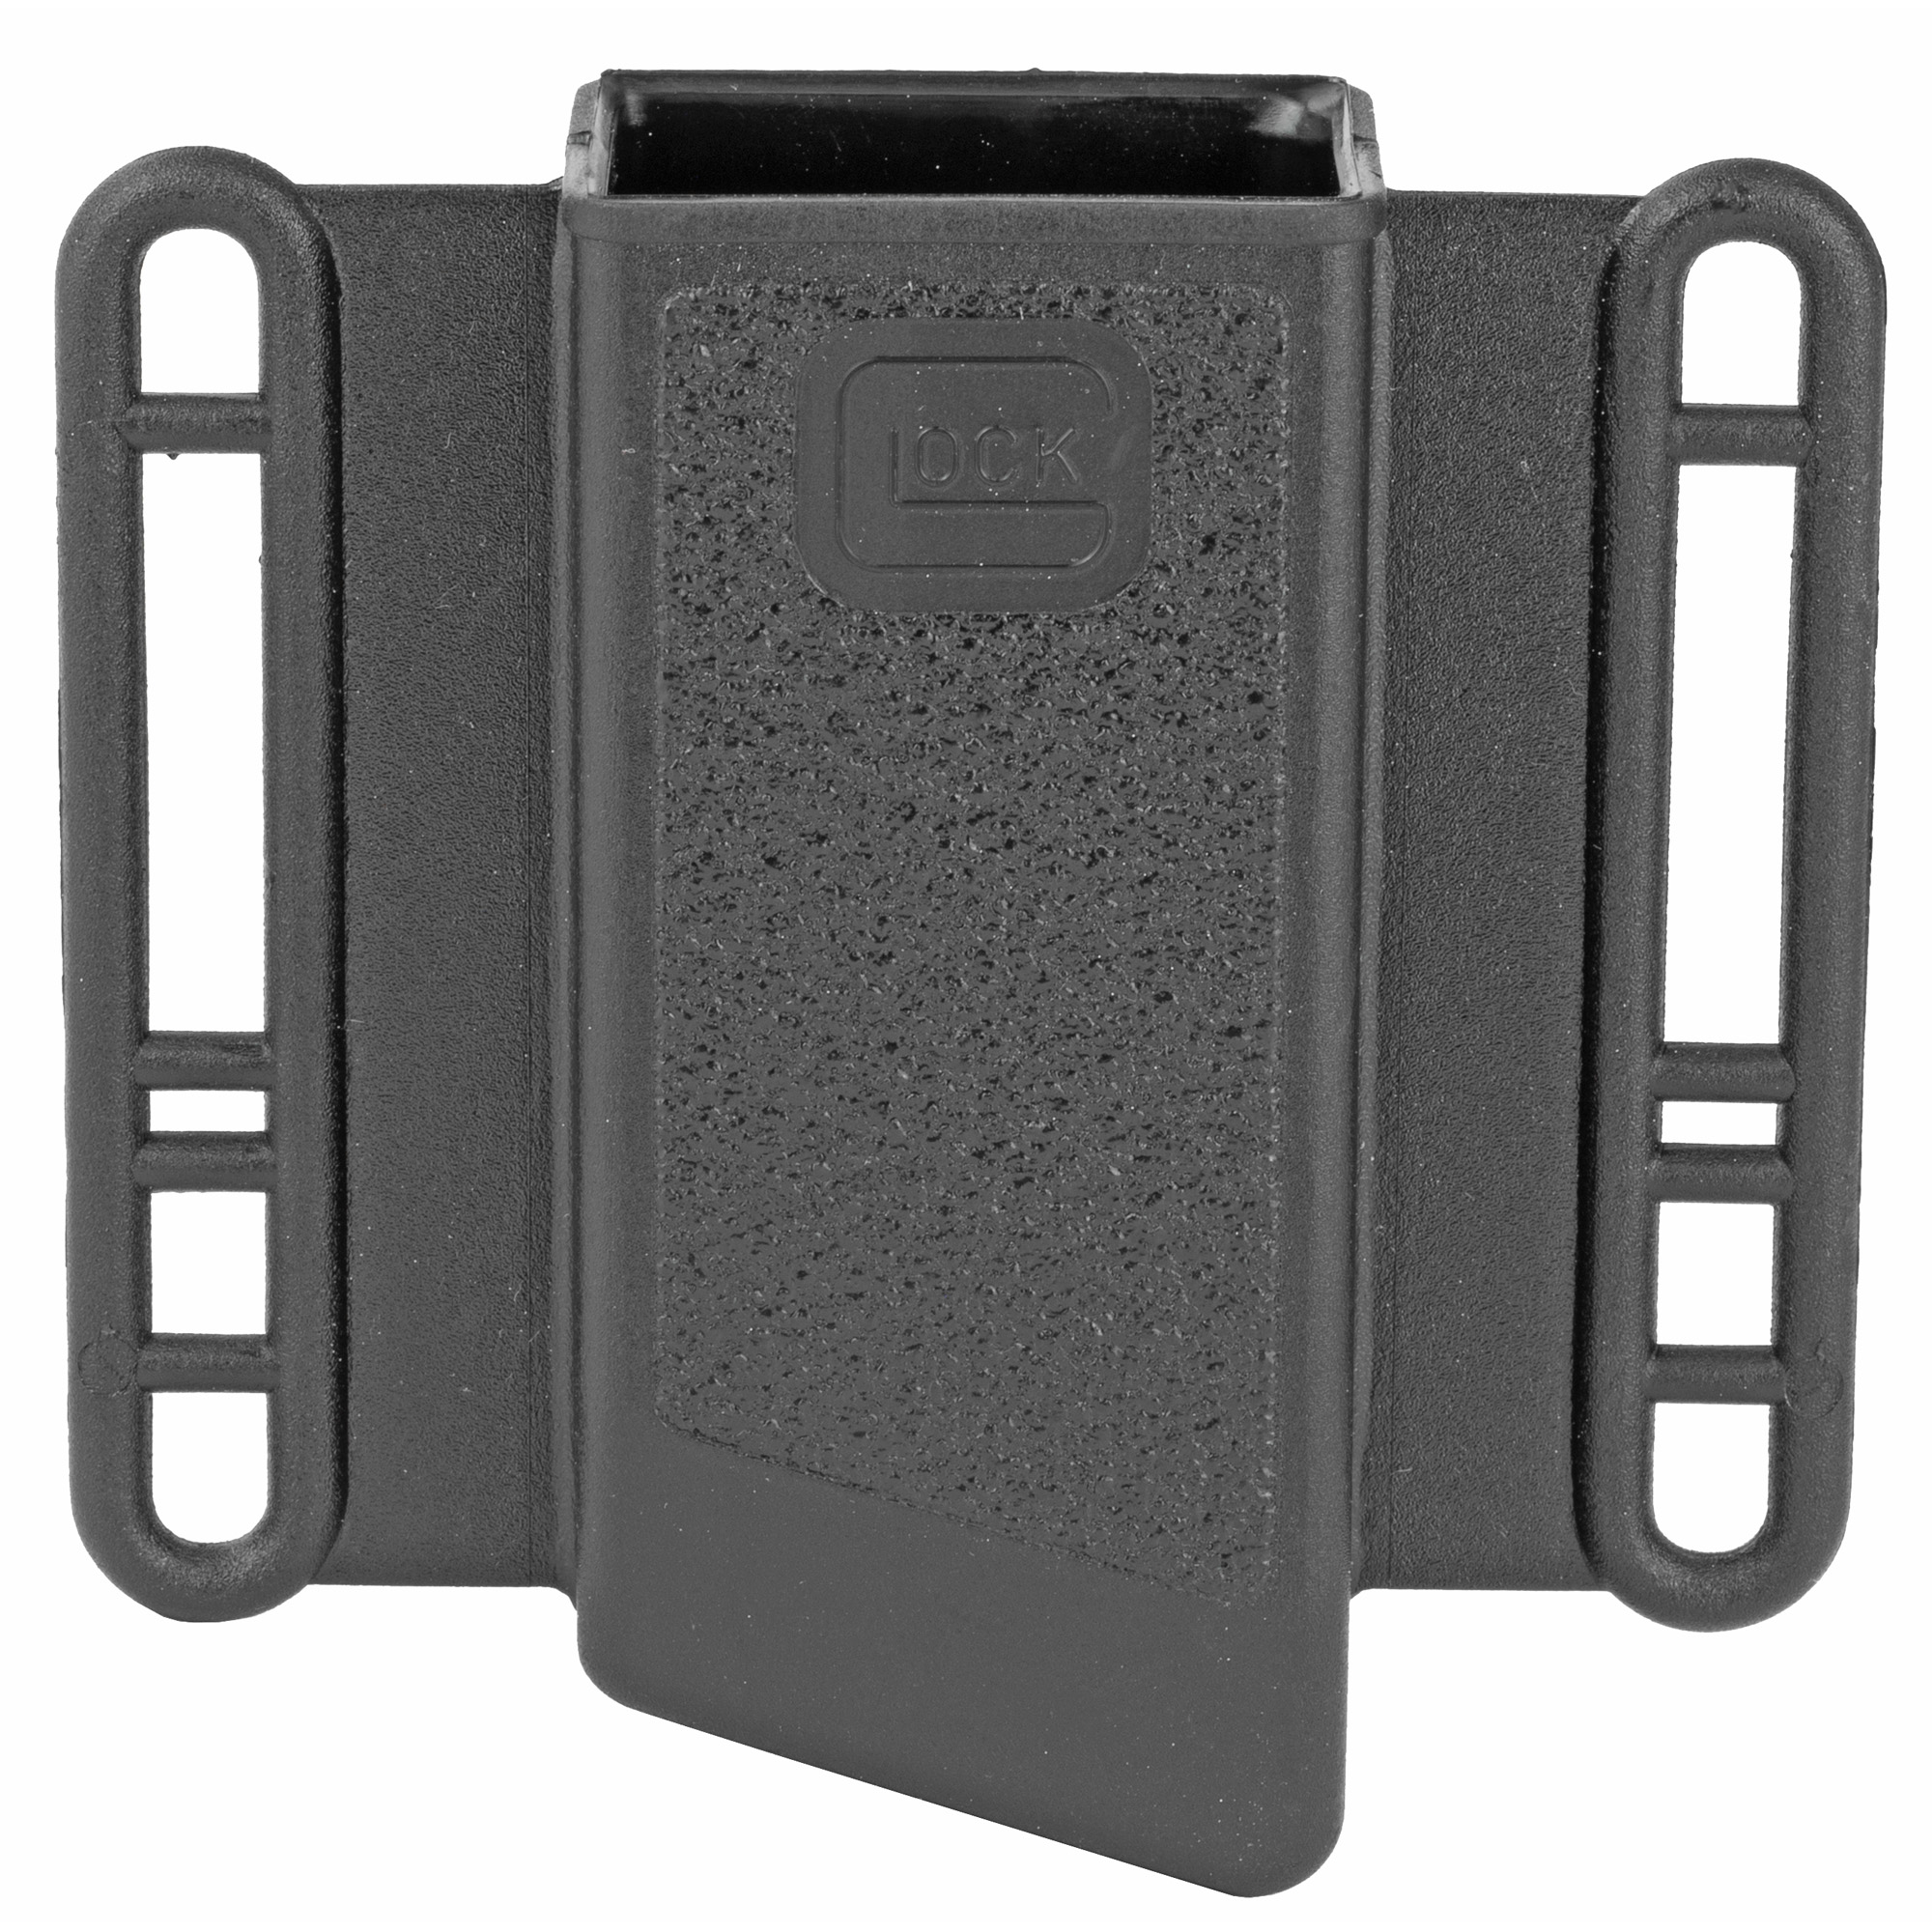 This is a OEM single magazine pouch for Glock 9/40/357/45GAP. It is made from the same highly durable polymer that you have come to depend on. The pouch has an innovative contoured design that allows for magazine retention without the need for any straps giving you greater speed and simplicity.